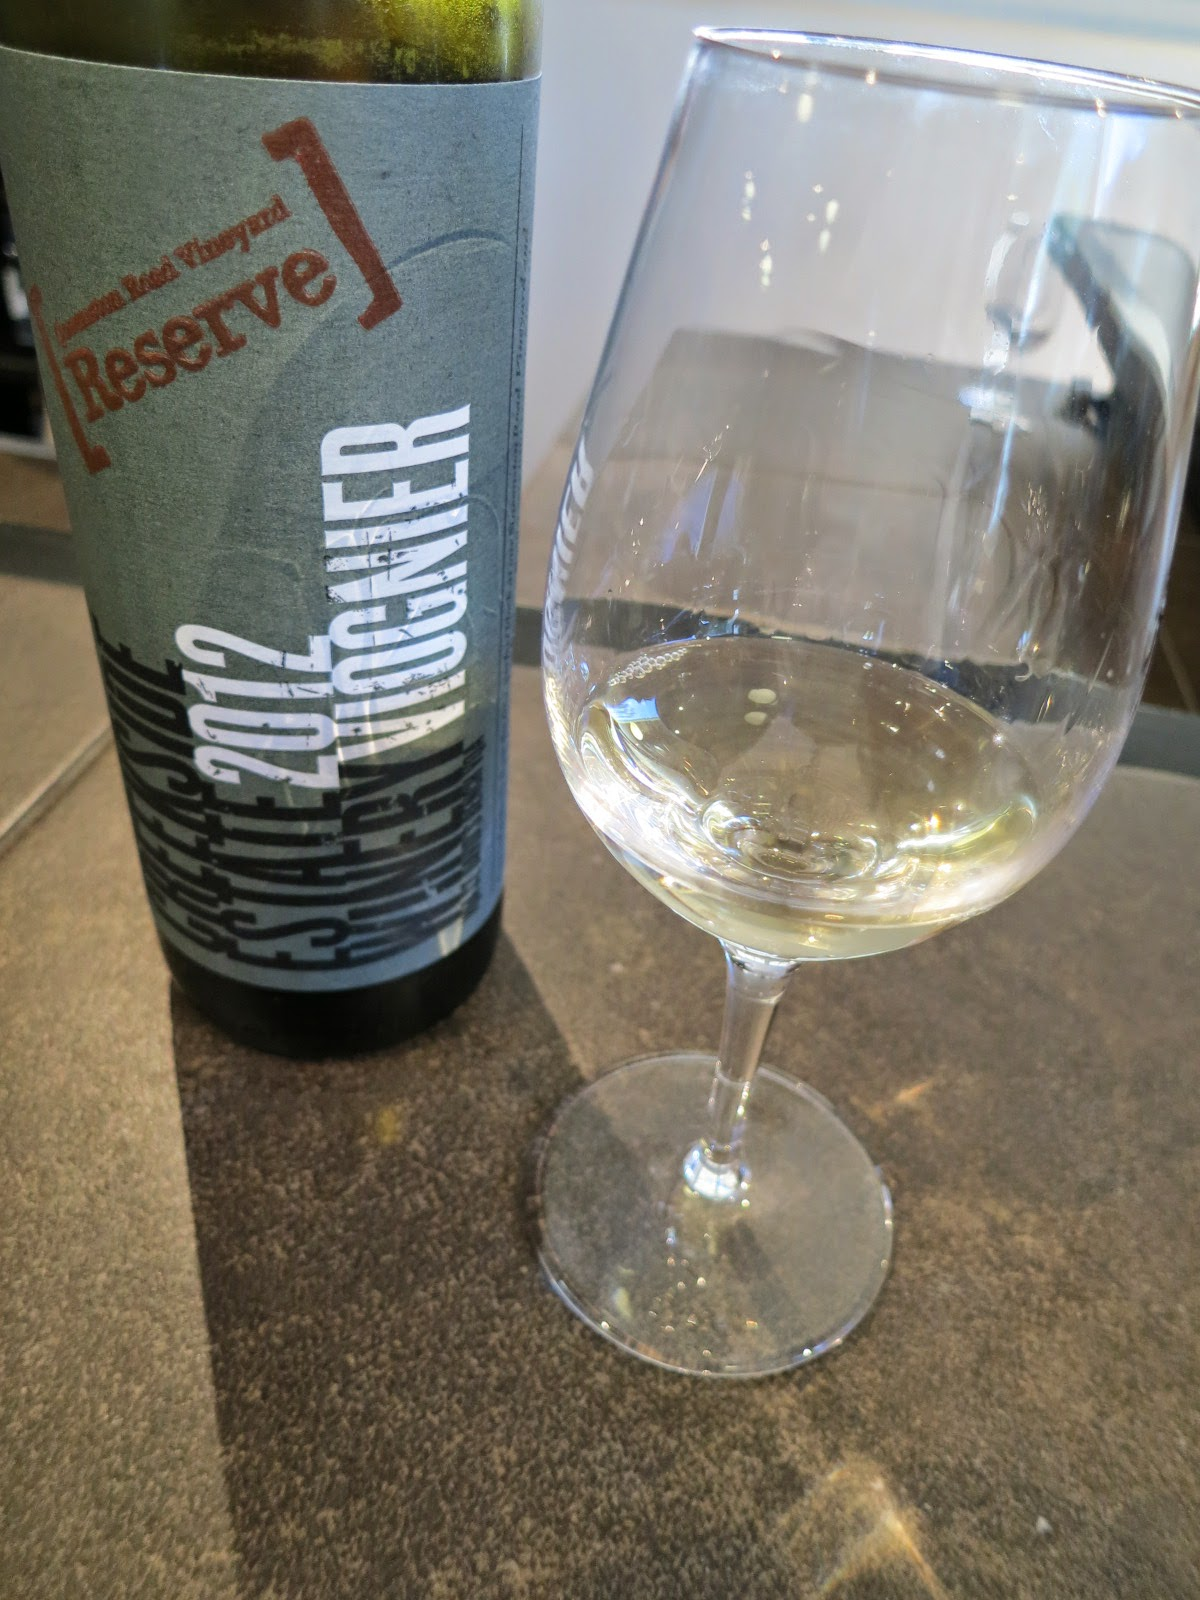 Wine Review of 2012 Creekside Reserve Viognier from Queenston Road Vineyard, VQA St. David's Bench